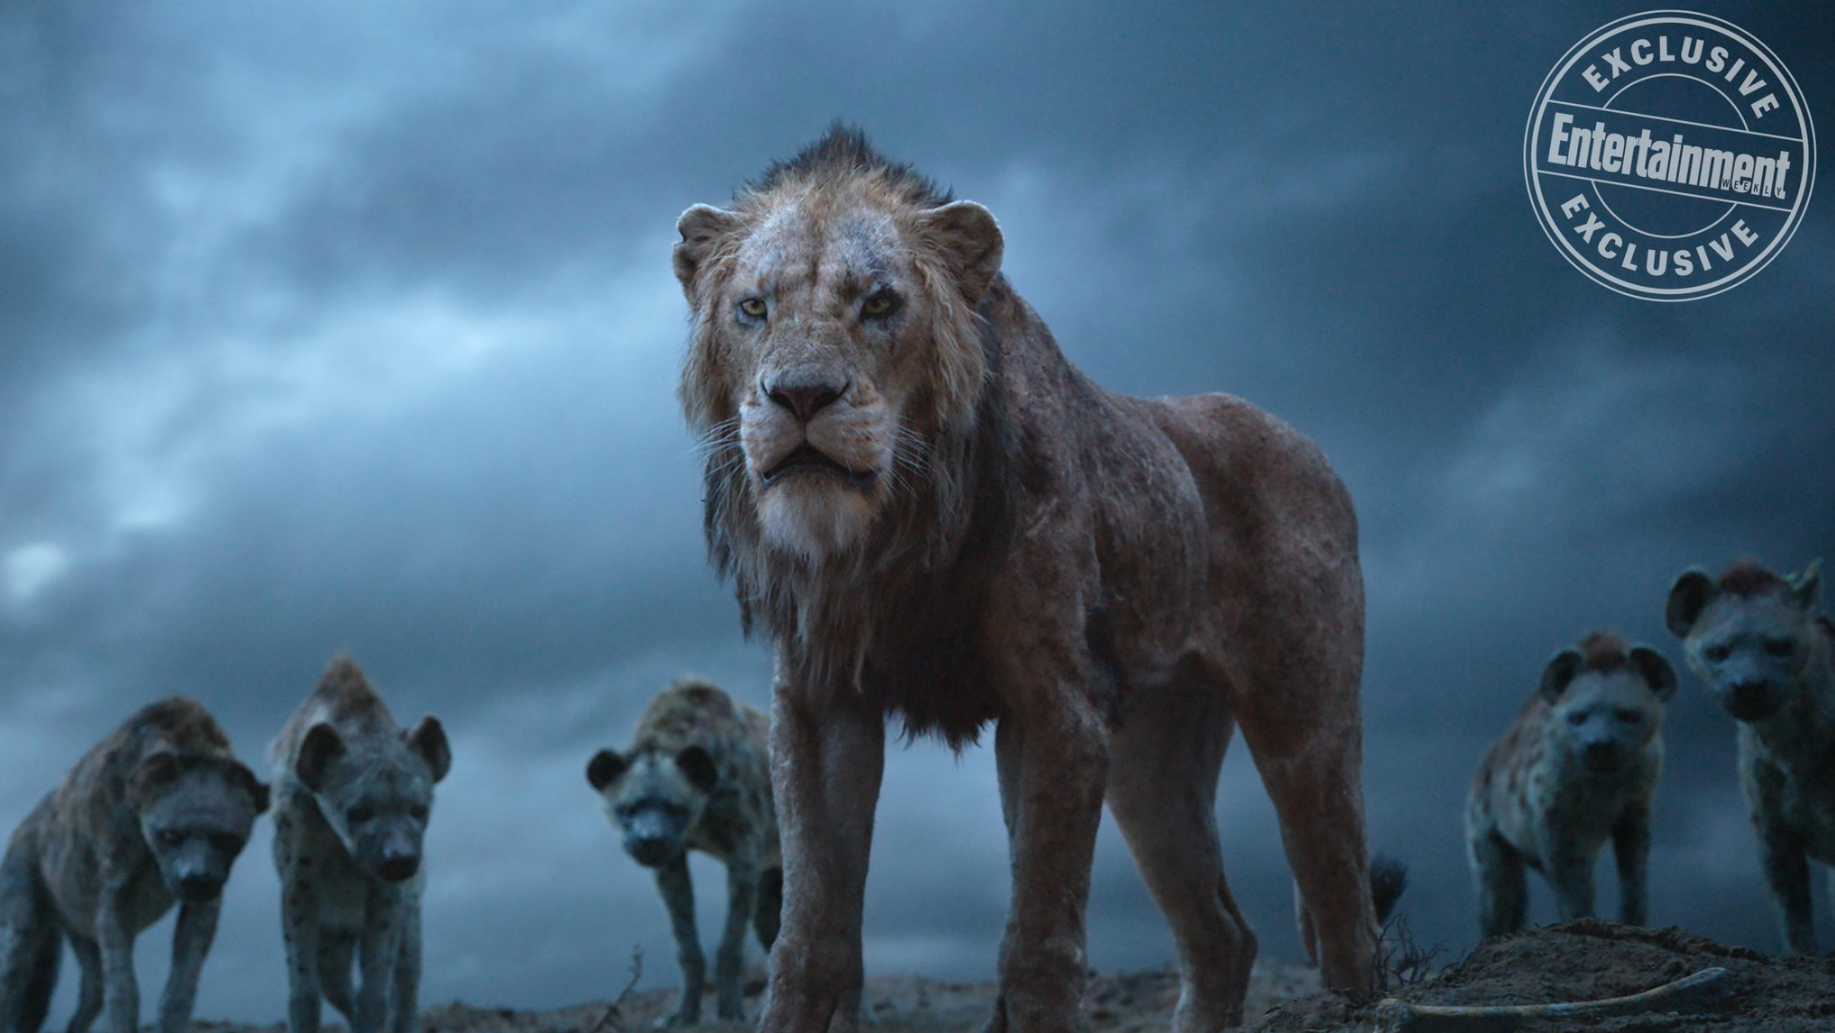 The Lion King Star Chiwetel Ejiofor Shares How His Version Of Scar Is More 'Brutalized'